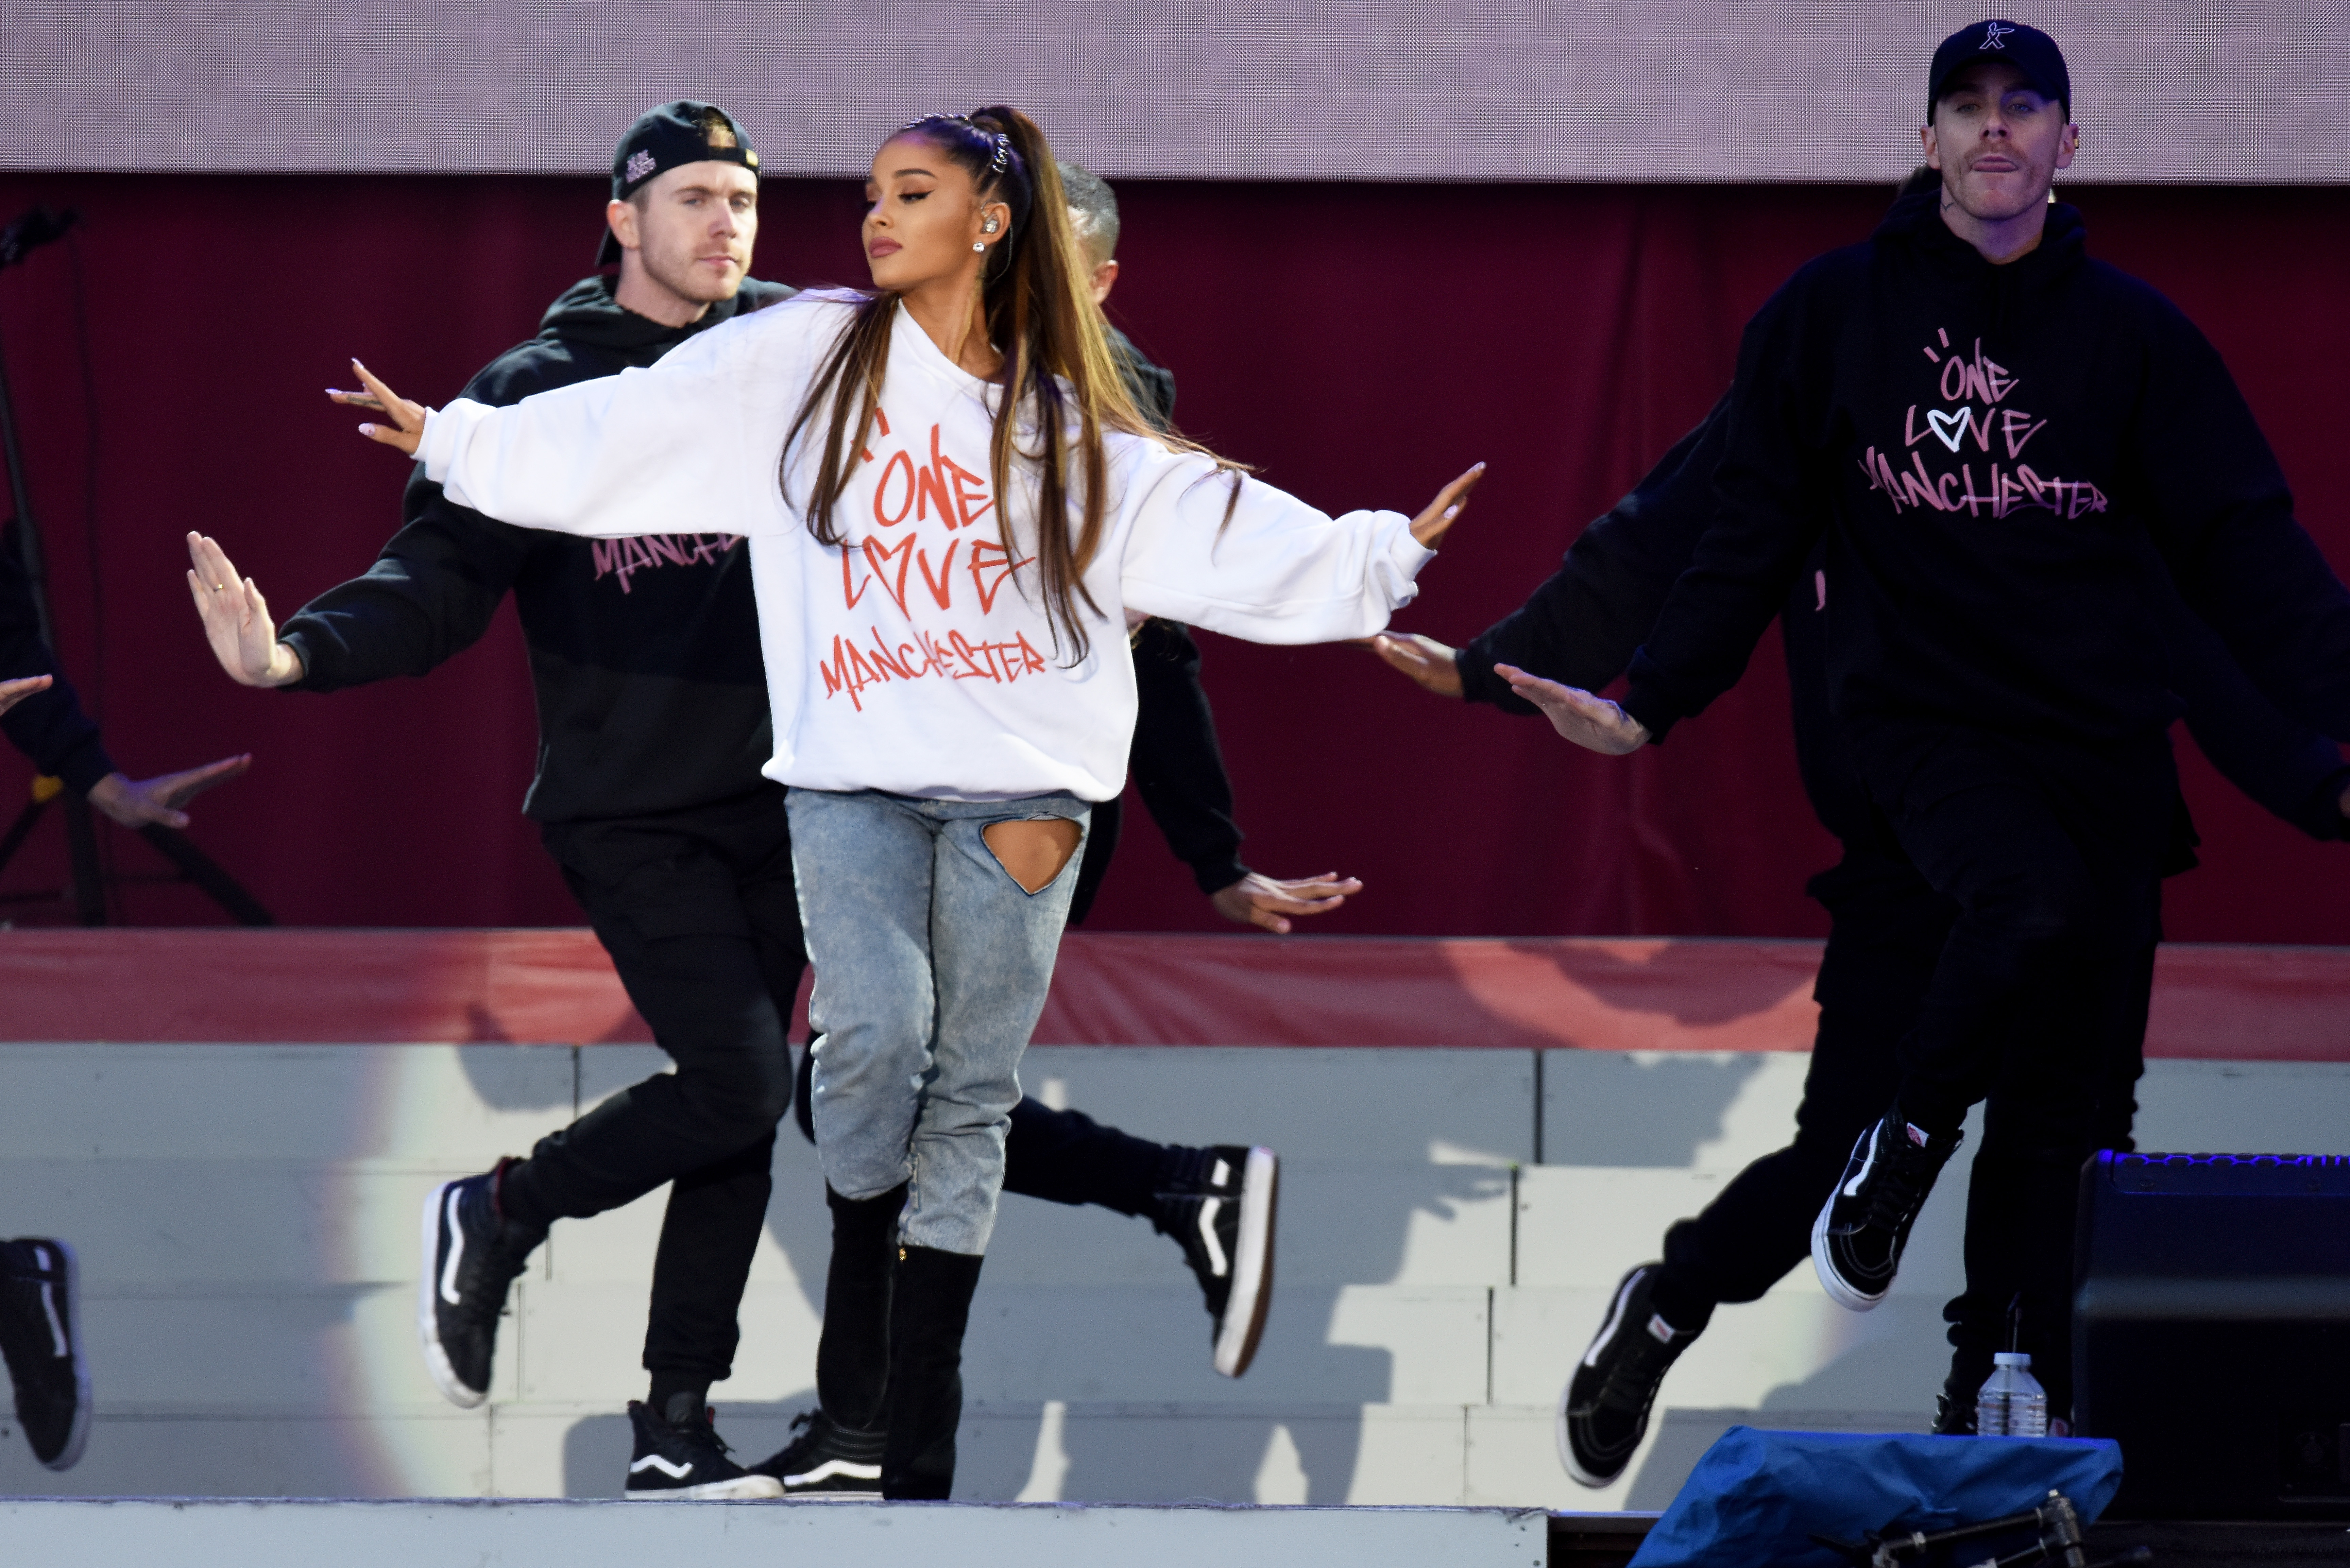 Ariana Grande at One Love Manchester